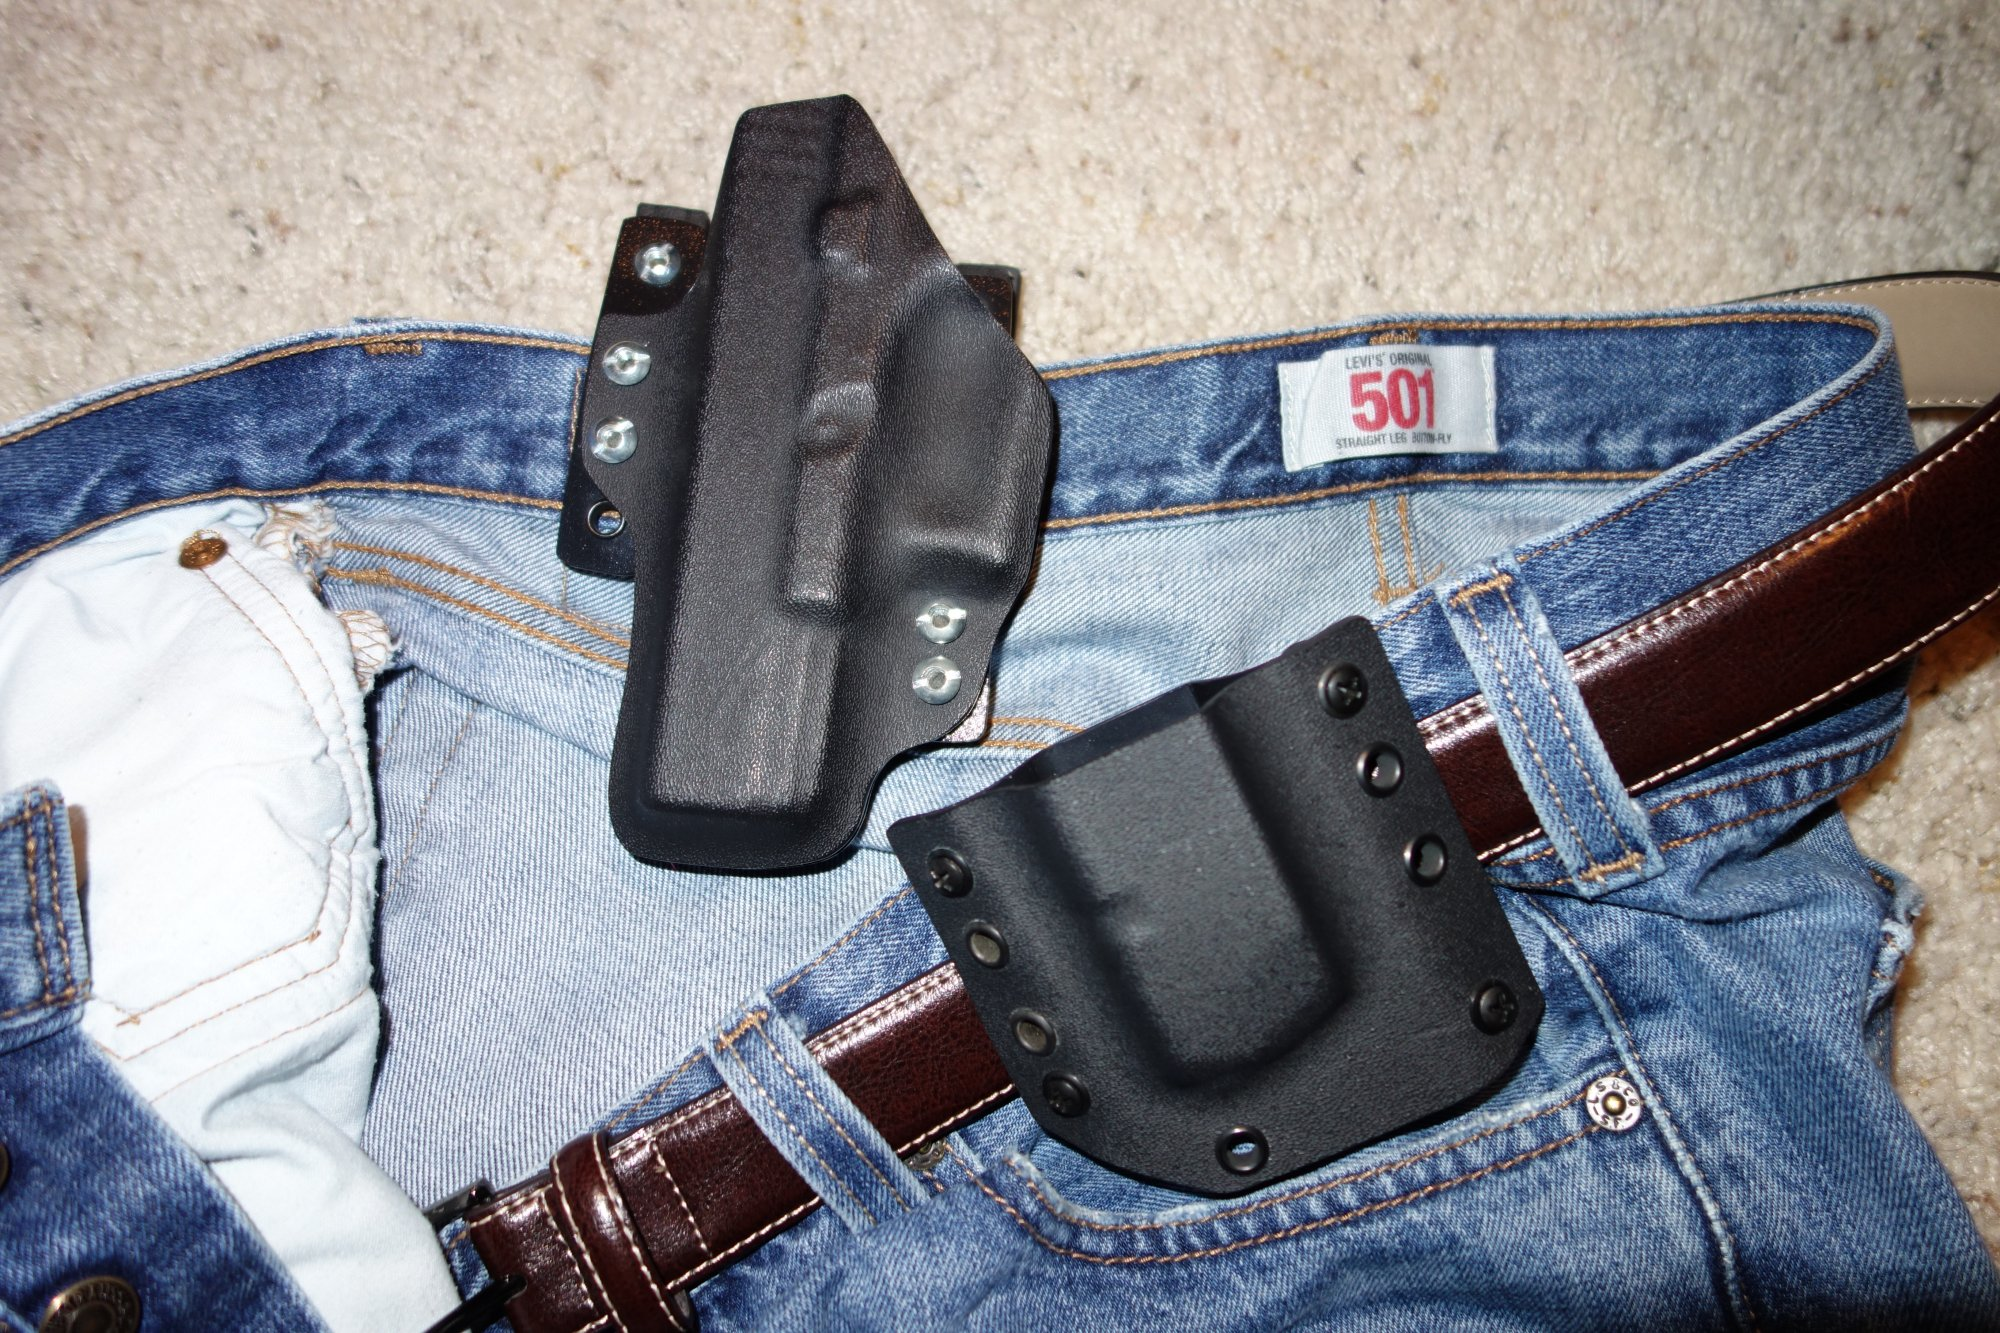 Bravo Concealment Holsters BCH DOS Holster Drop Out of Sight Holster Inside the Waistband Holster for Glock 19 G19 Tactical Pistol Concealment Holster David Crane DefenseReview.com DR 5 Bravo Concealment (BC) D.O.S. (Drop Out of Sight) Holster: Covert Tactical Kydex IWB Concealed Carry (CCW) Holster for Glock 19 Compact 9mm Pistol, and Pistol Mag Carrier/Pouch